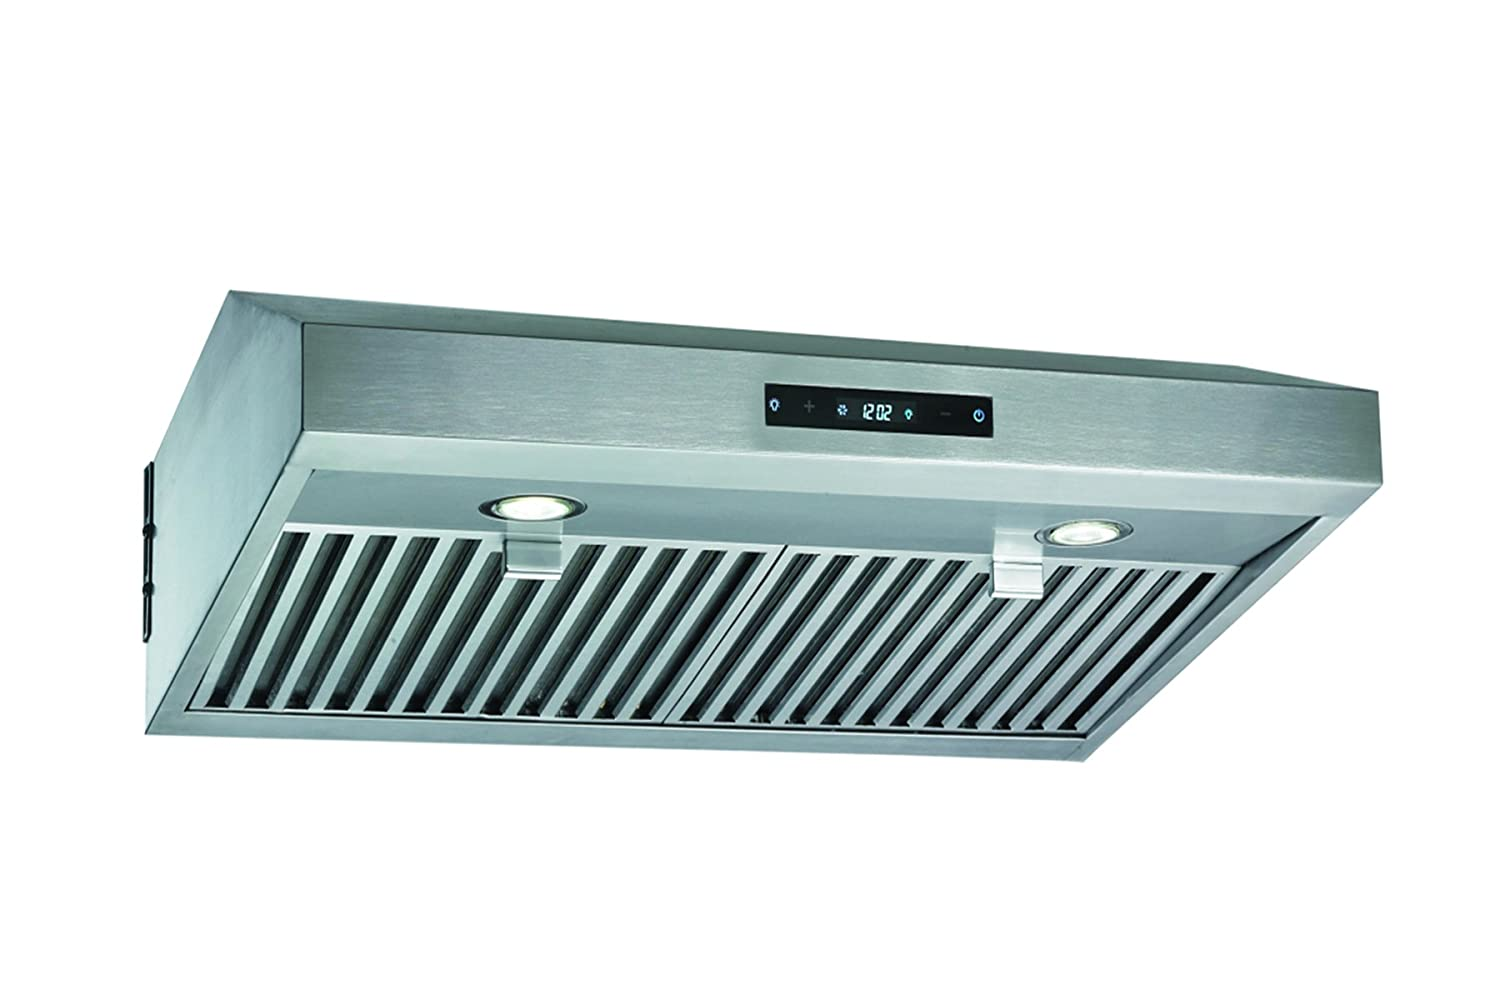 Blue ocean 30 rh76tuc stainless steel under cabinet kitchen range hood amazon ca home kitchen